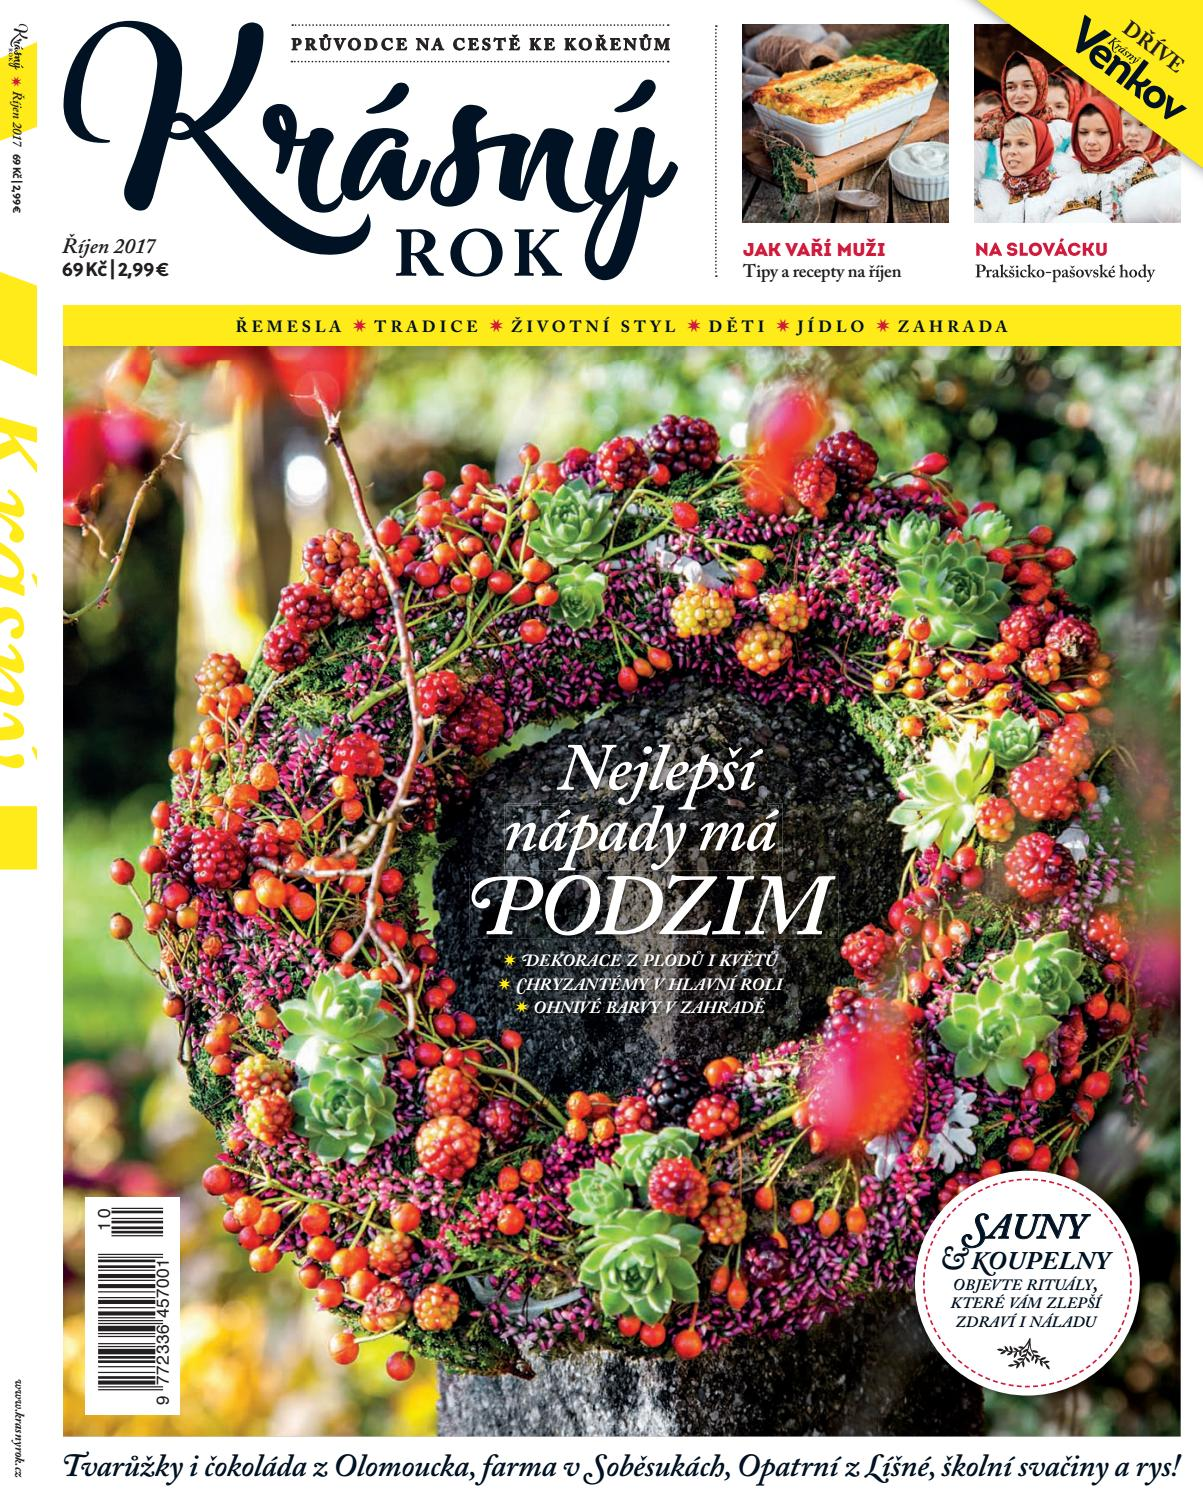 časopis Krasný rok 10 2017 by Deco Media - issuu e348008a80